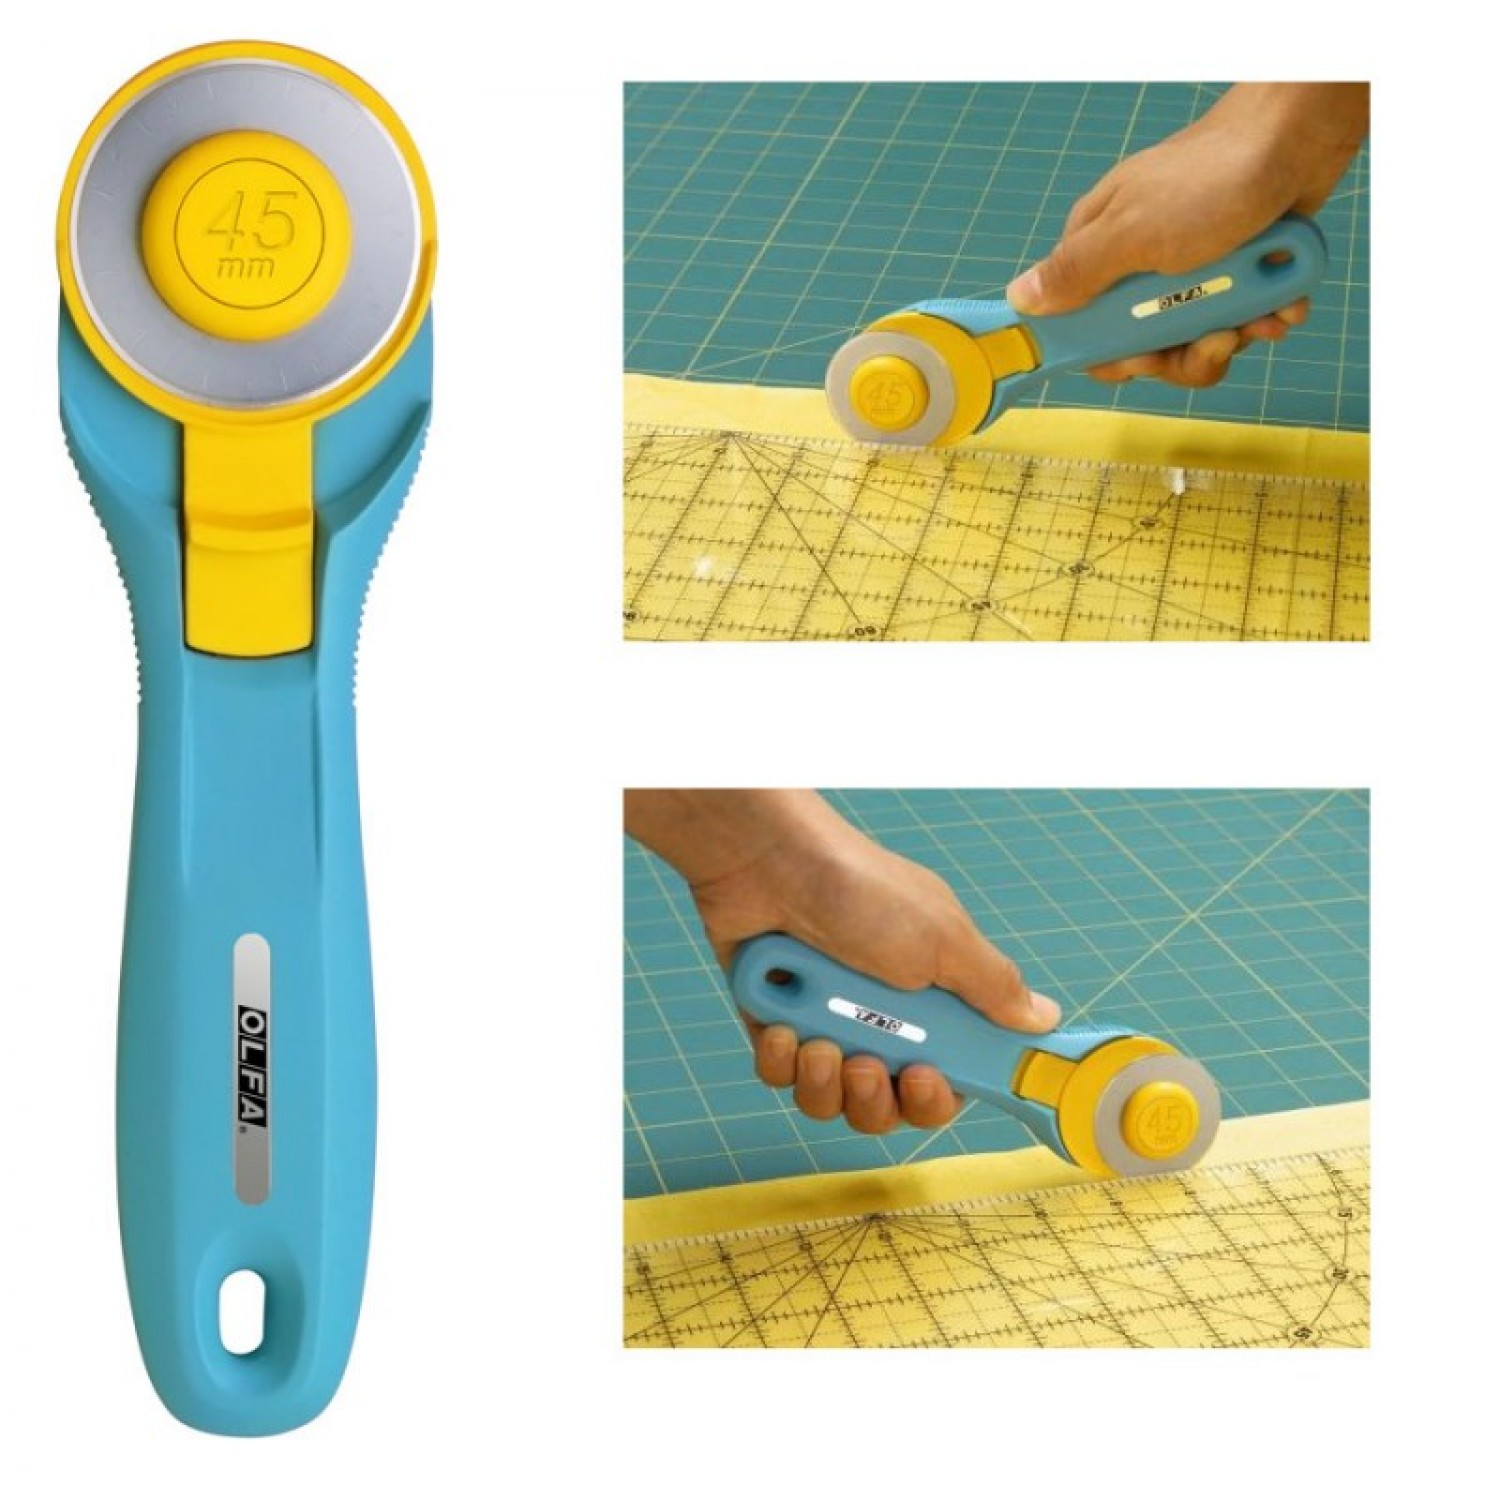 Olfa RTY-2C Splash Rotary Cutter 45mm